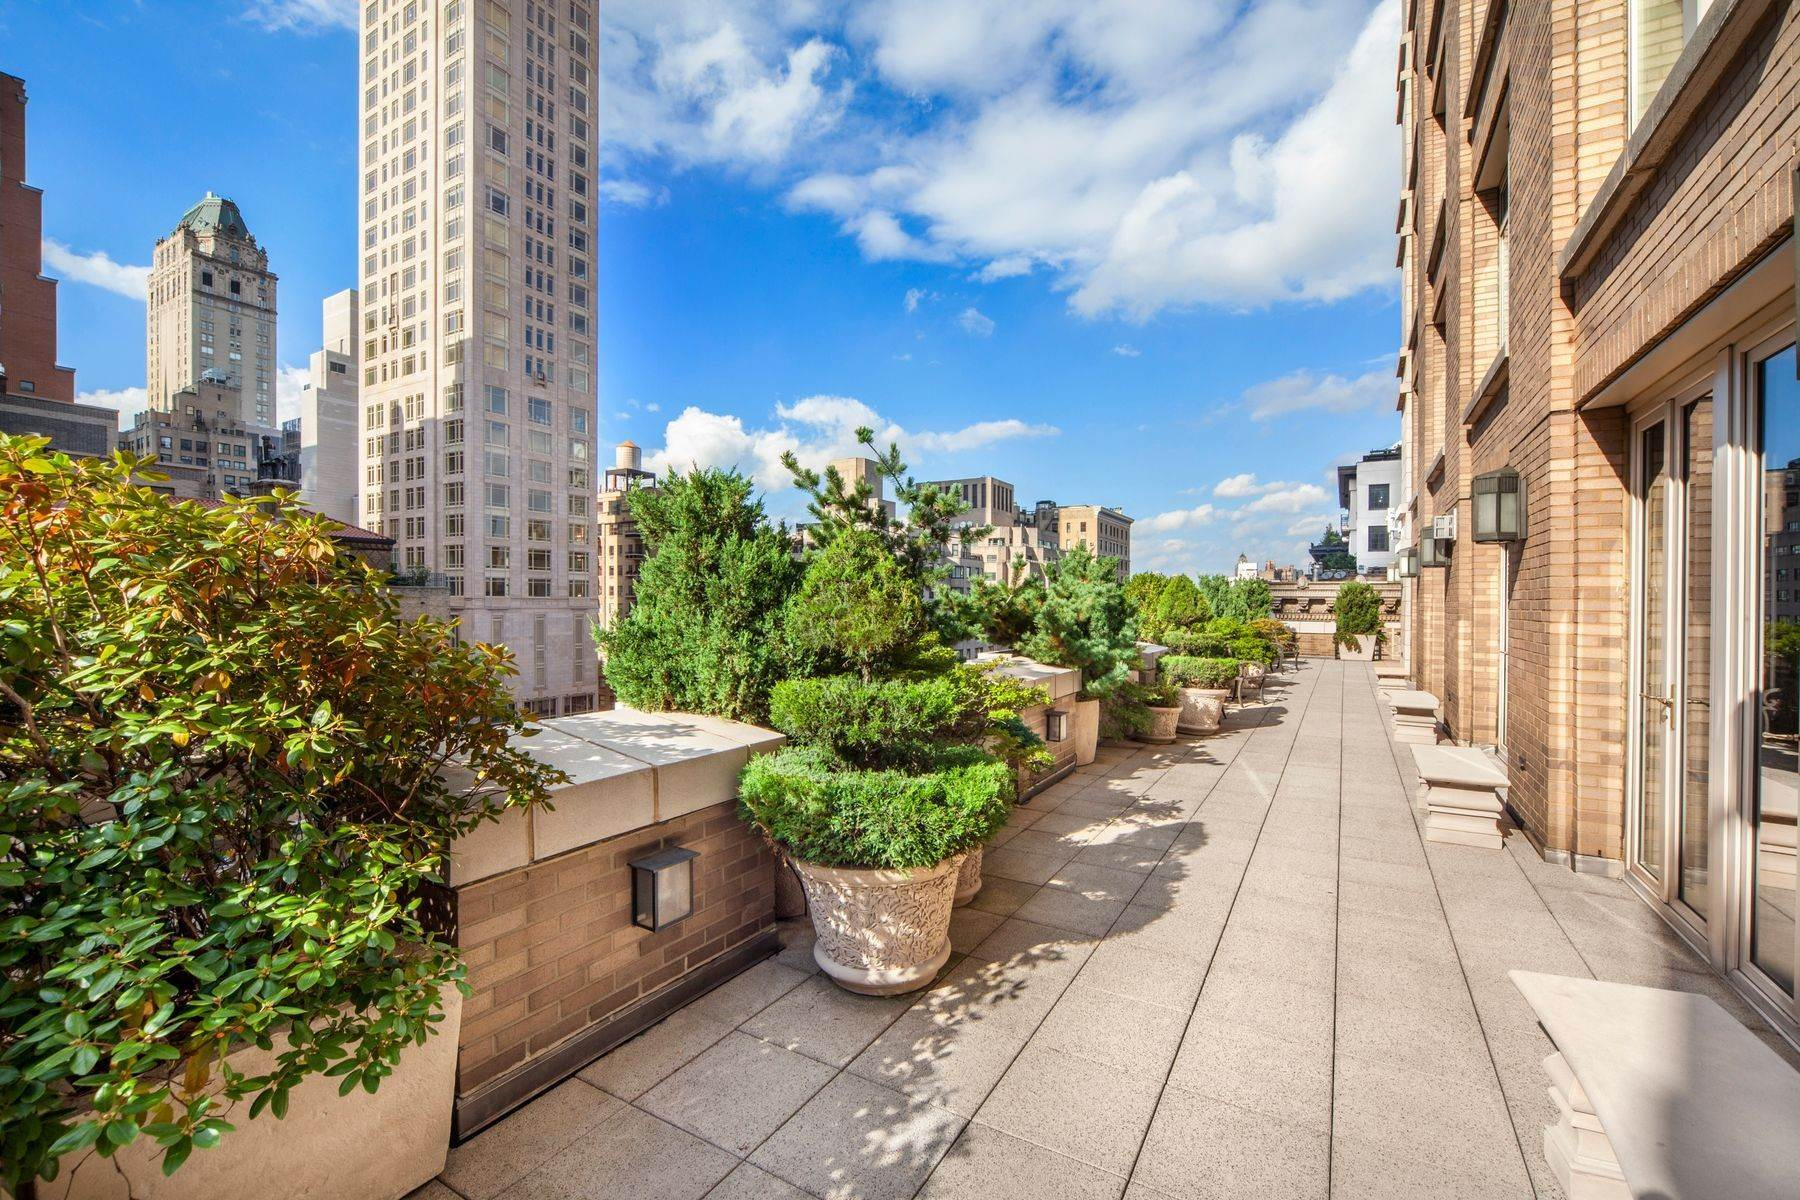 Condominiums for Sale at Spectacular Terraces on Park Avenue 515 Park Avenue, 15/16 New York, New York 10022 United States